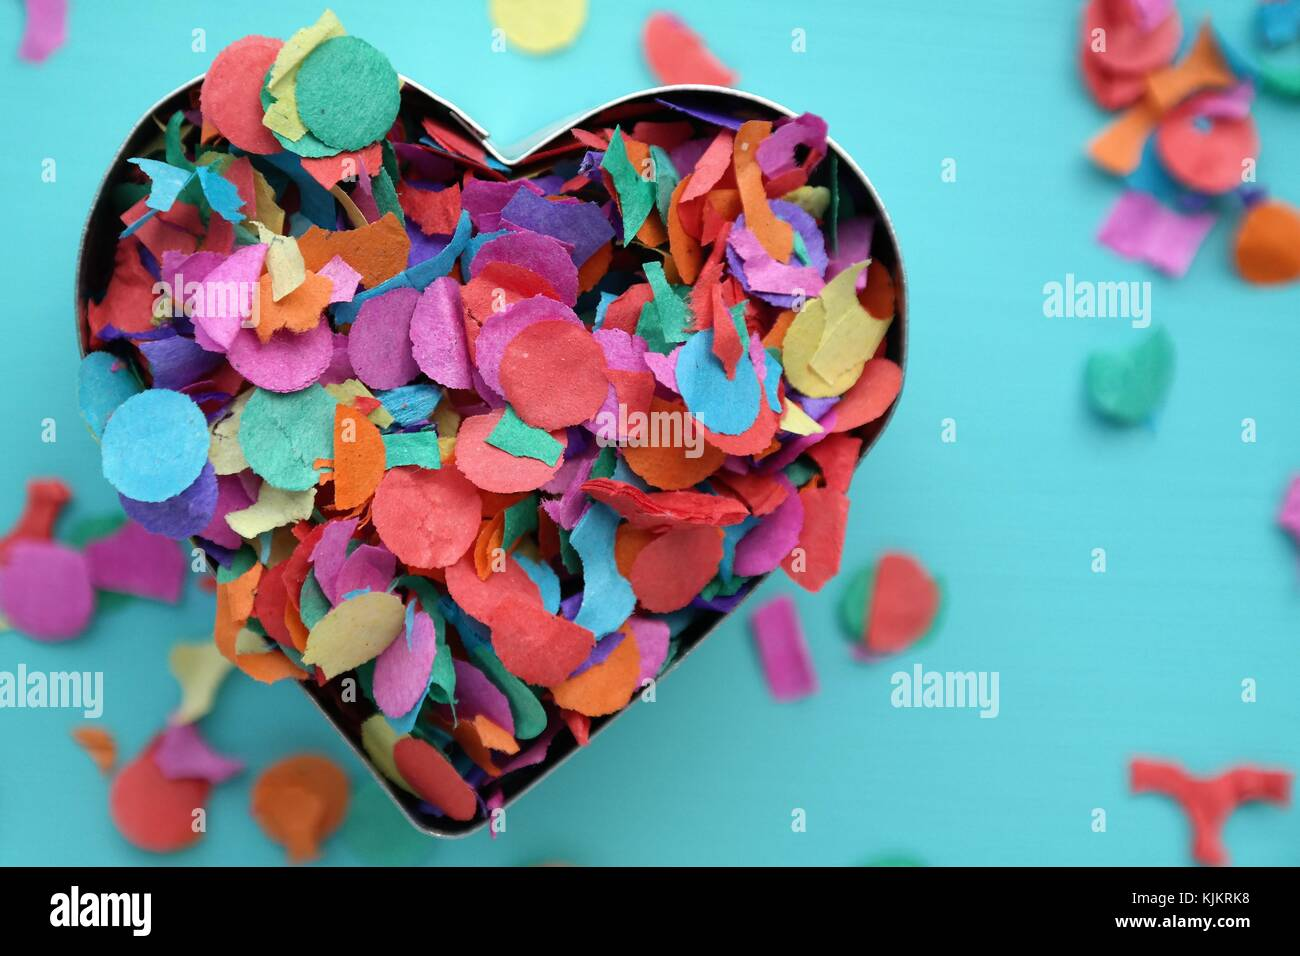 valentine, heart with colorful confetti on blue background. Carnival, creative concept with copy space - Stock Image